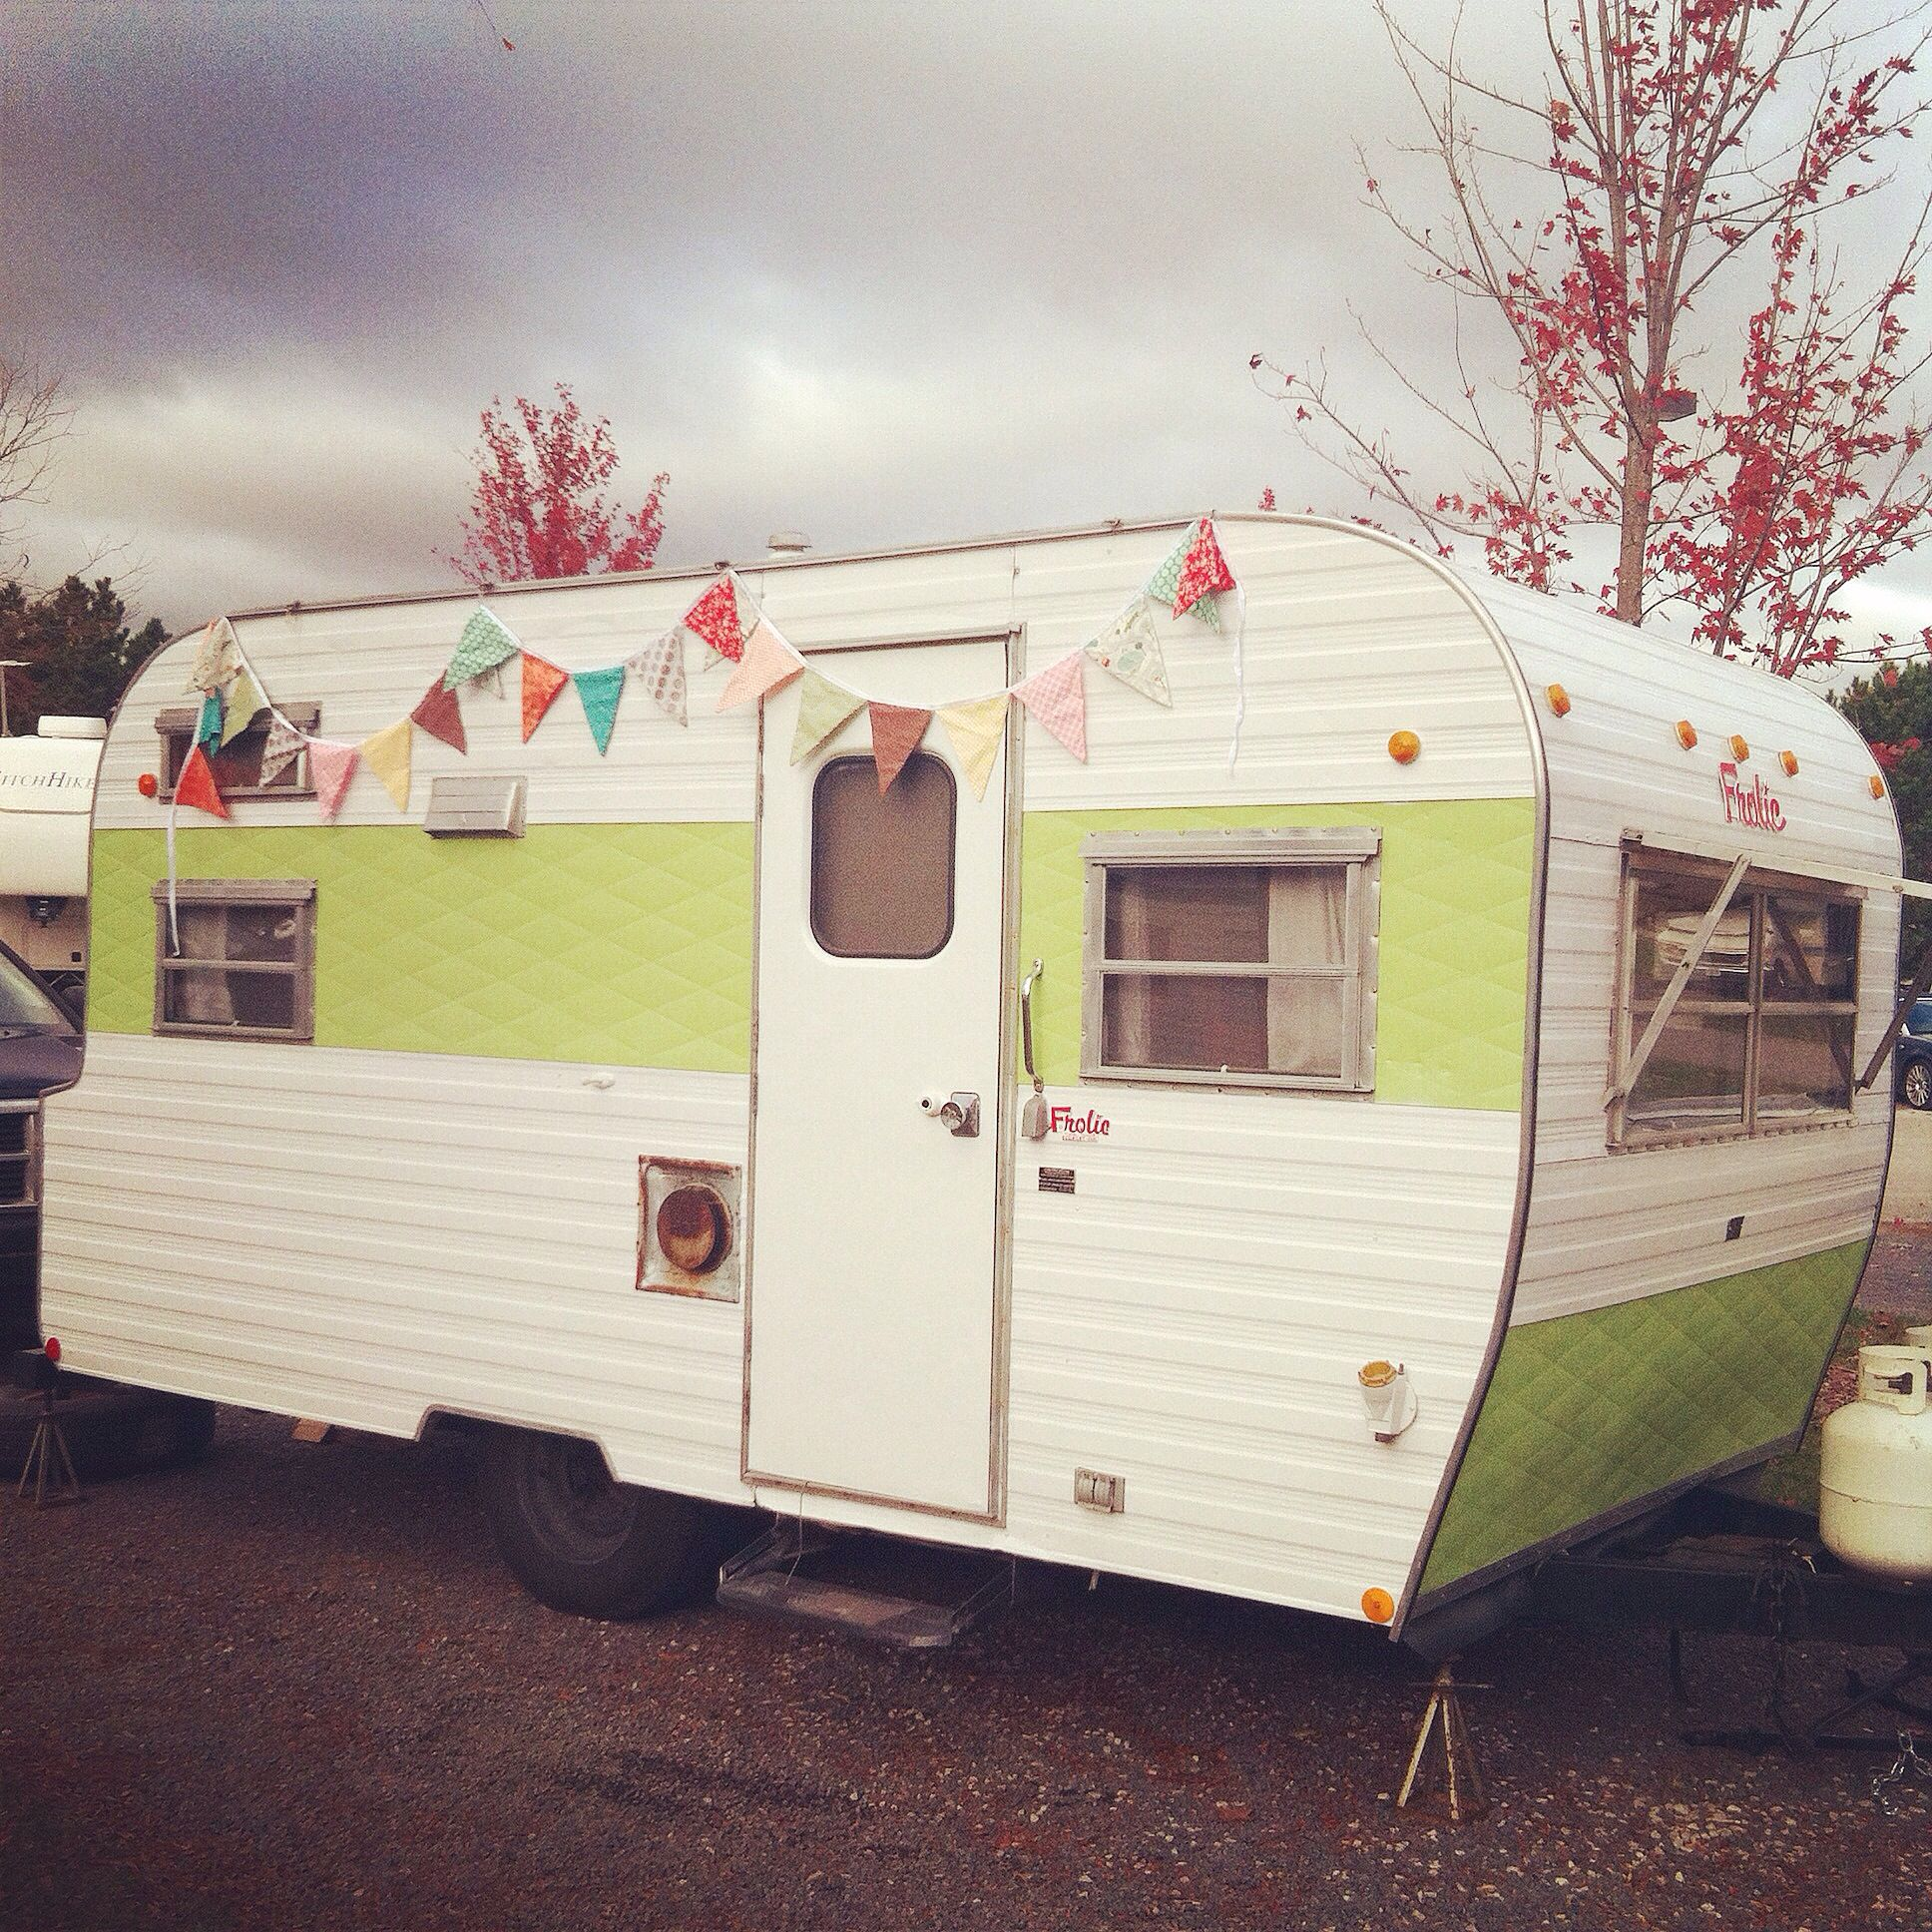 Travel Trailers With Outdoor Kitchens: 1967 Frolic Vintage Camper